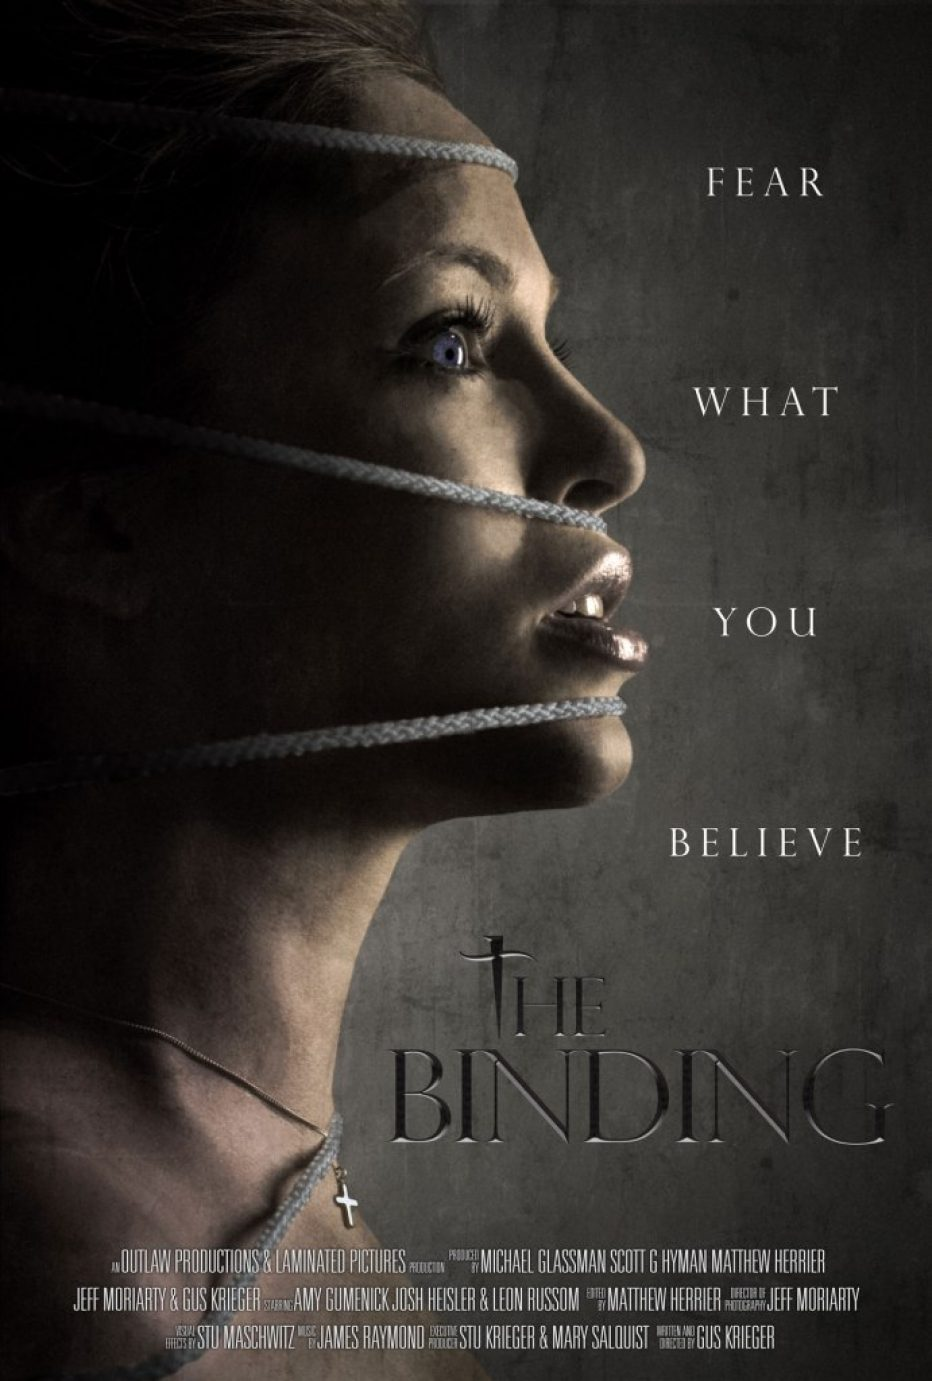 The Binding- Available To Watch on Digital Download From 18th December